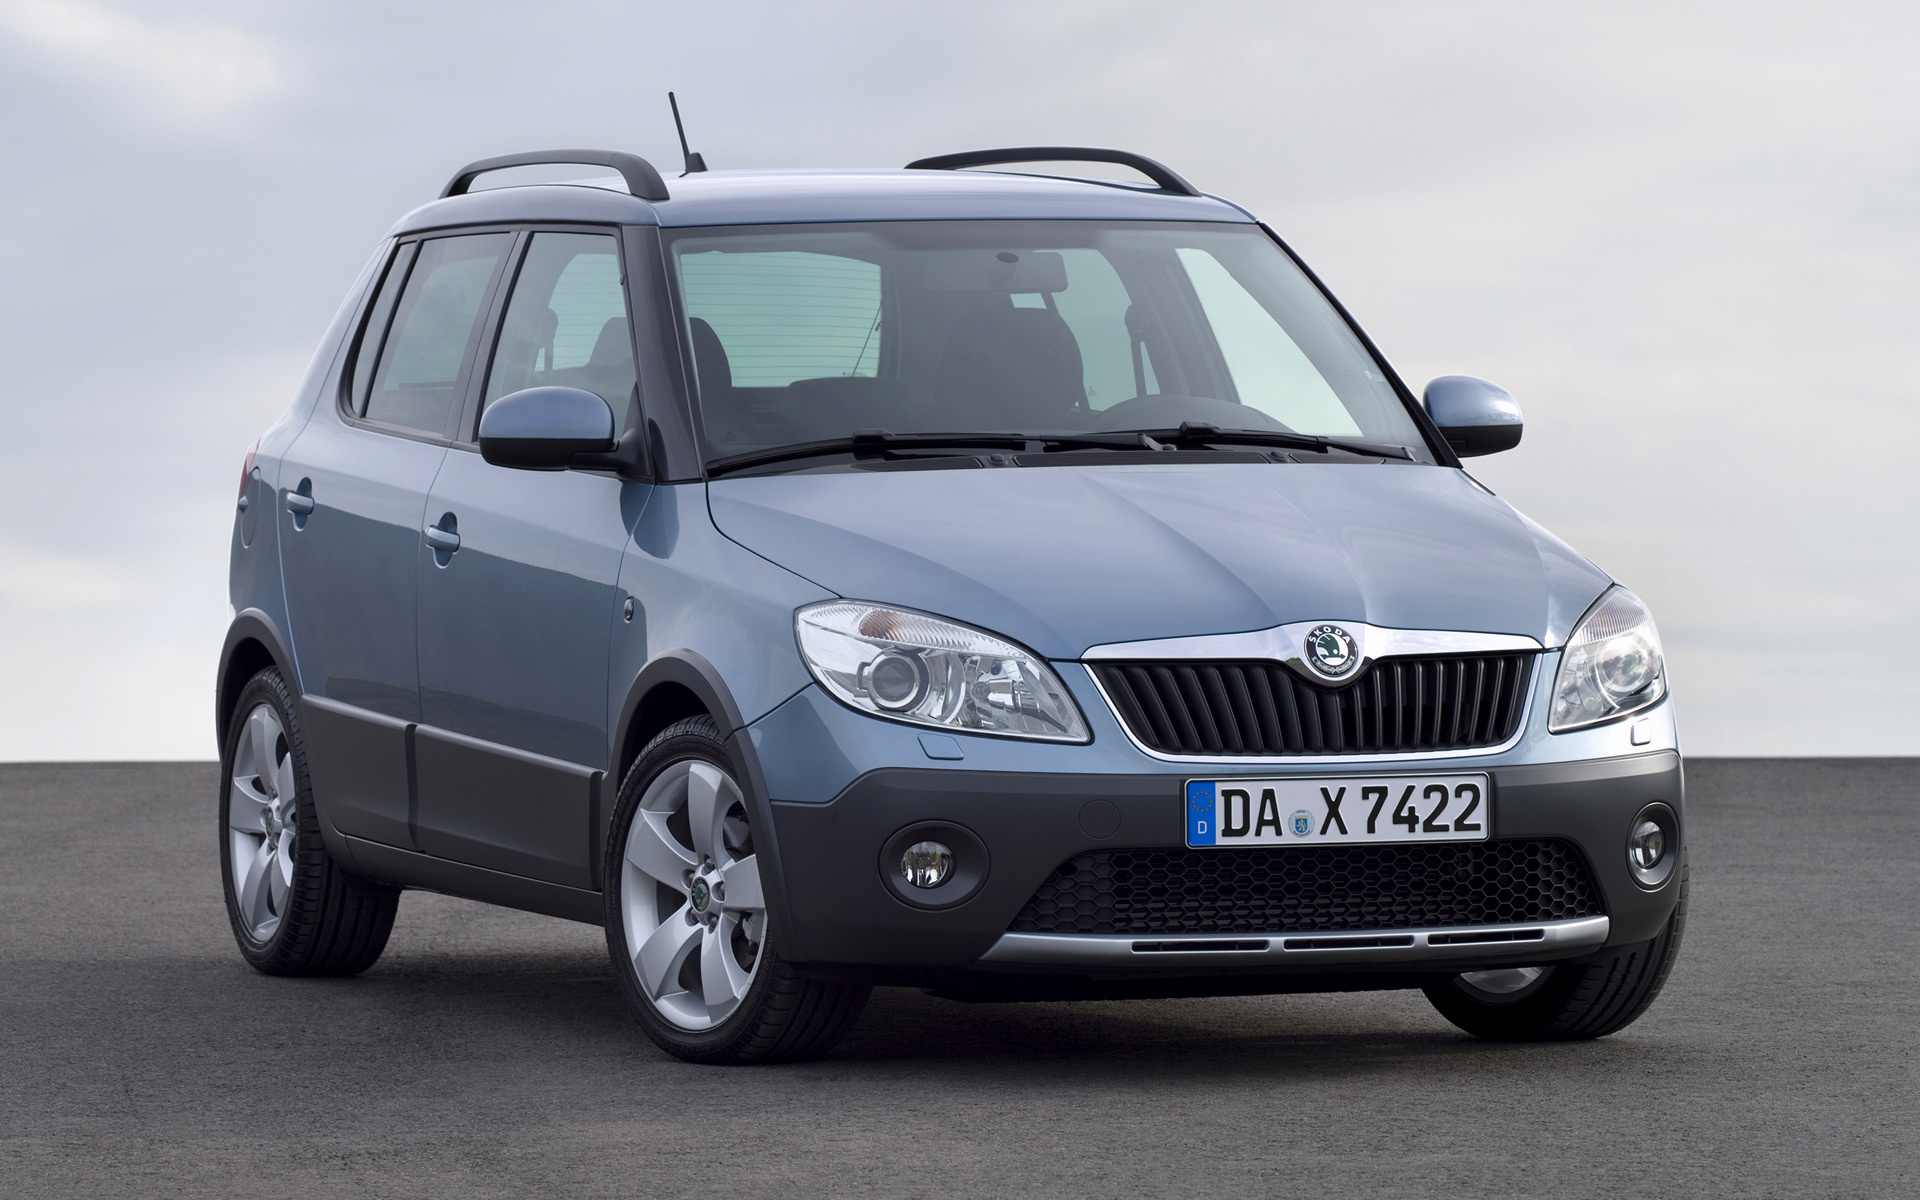 2010 skoda fabia scout wallpapers and hd images car pixel. Black Bedroom Furniture Sets. Home Design Ideas